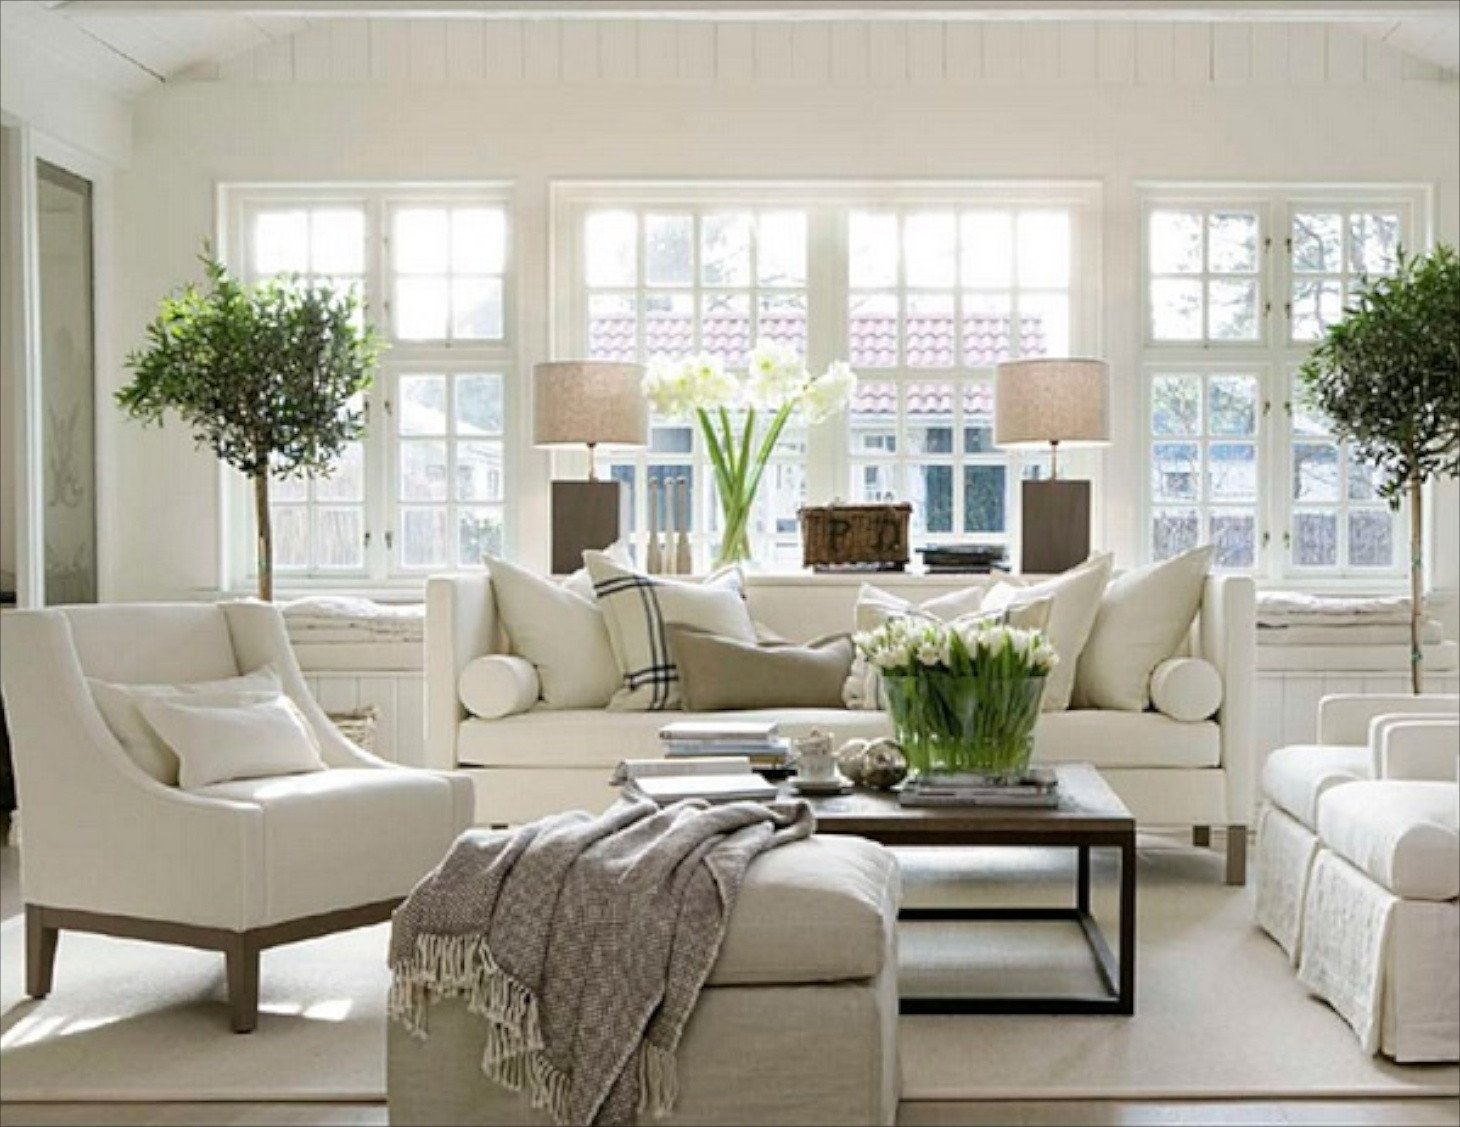 Contemporary Traditional Living Room Awesome 22 Cozy Traditional Living Room Indoor Plant Modern White Decor Whg